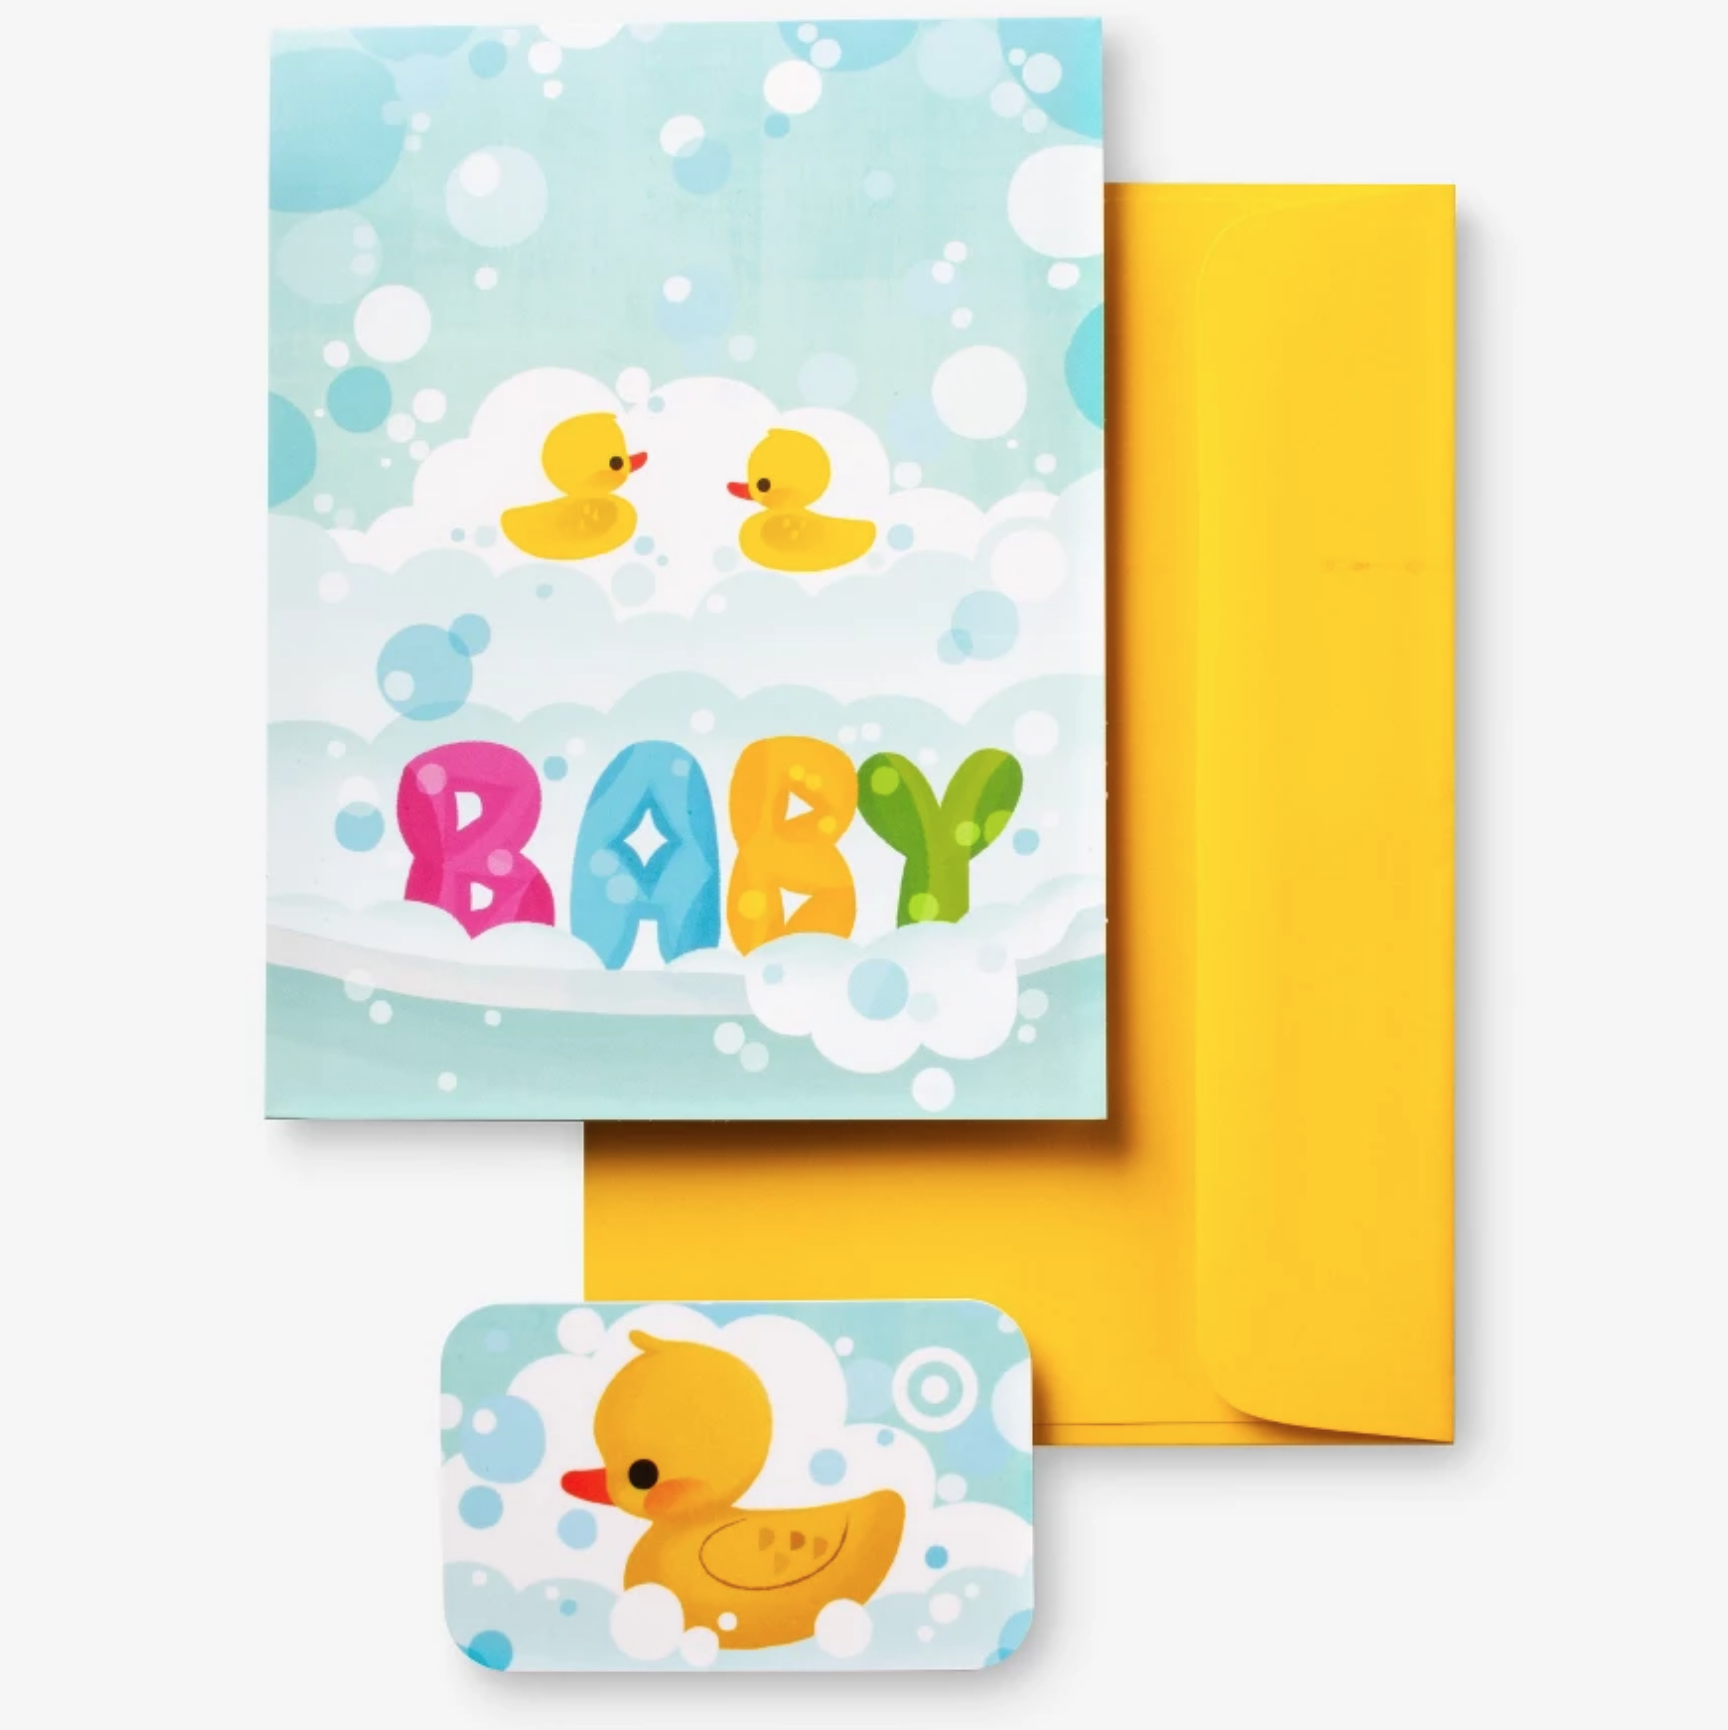 Target ducky gift card + free greeting card